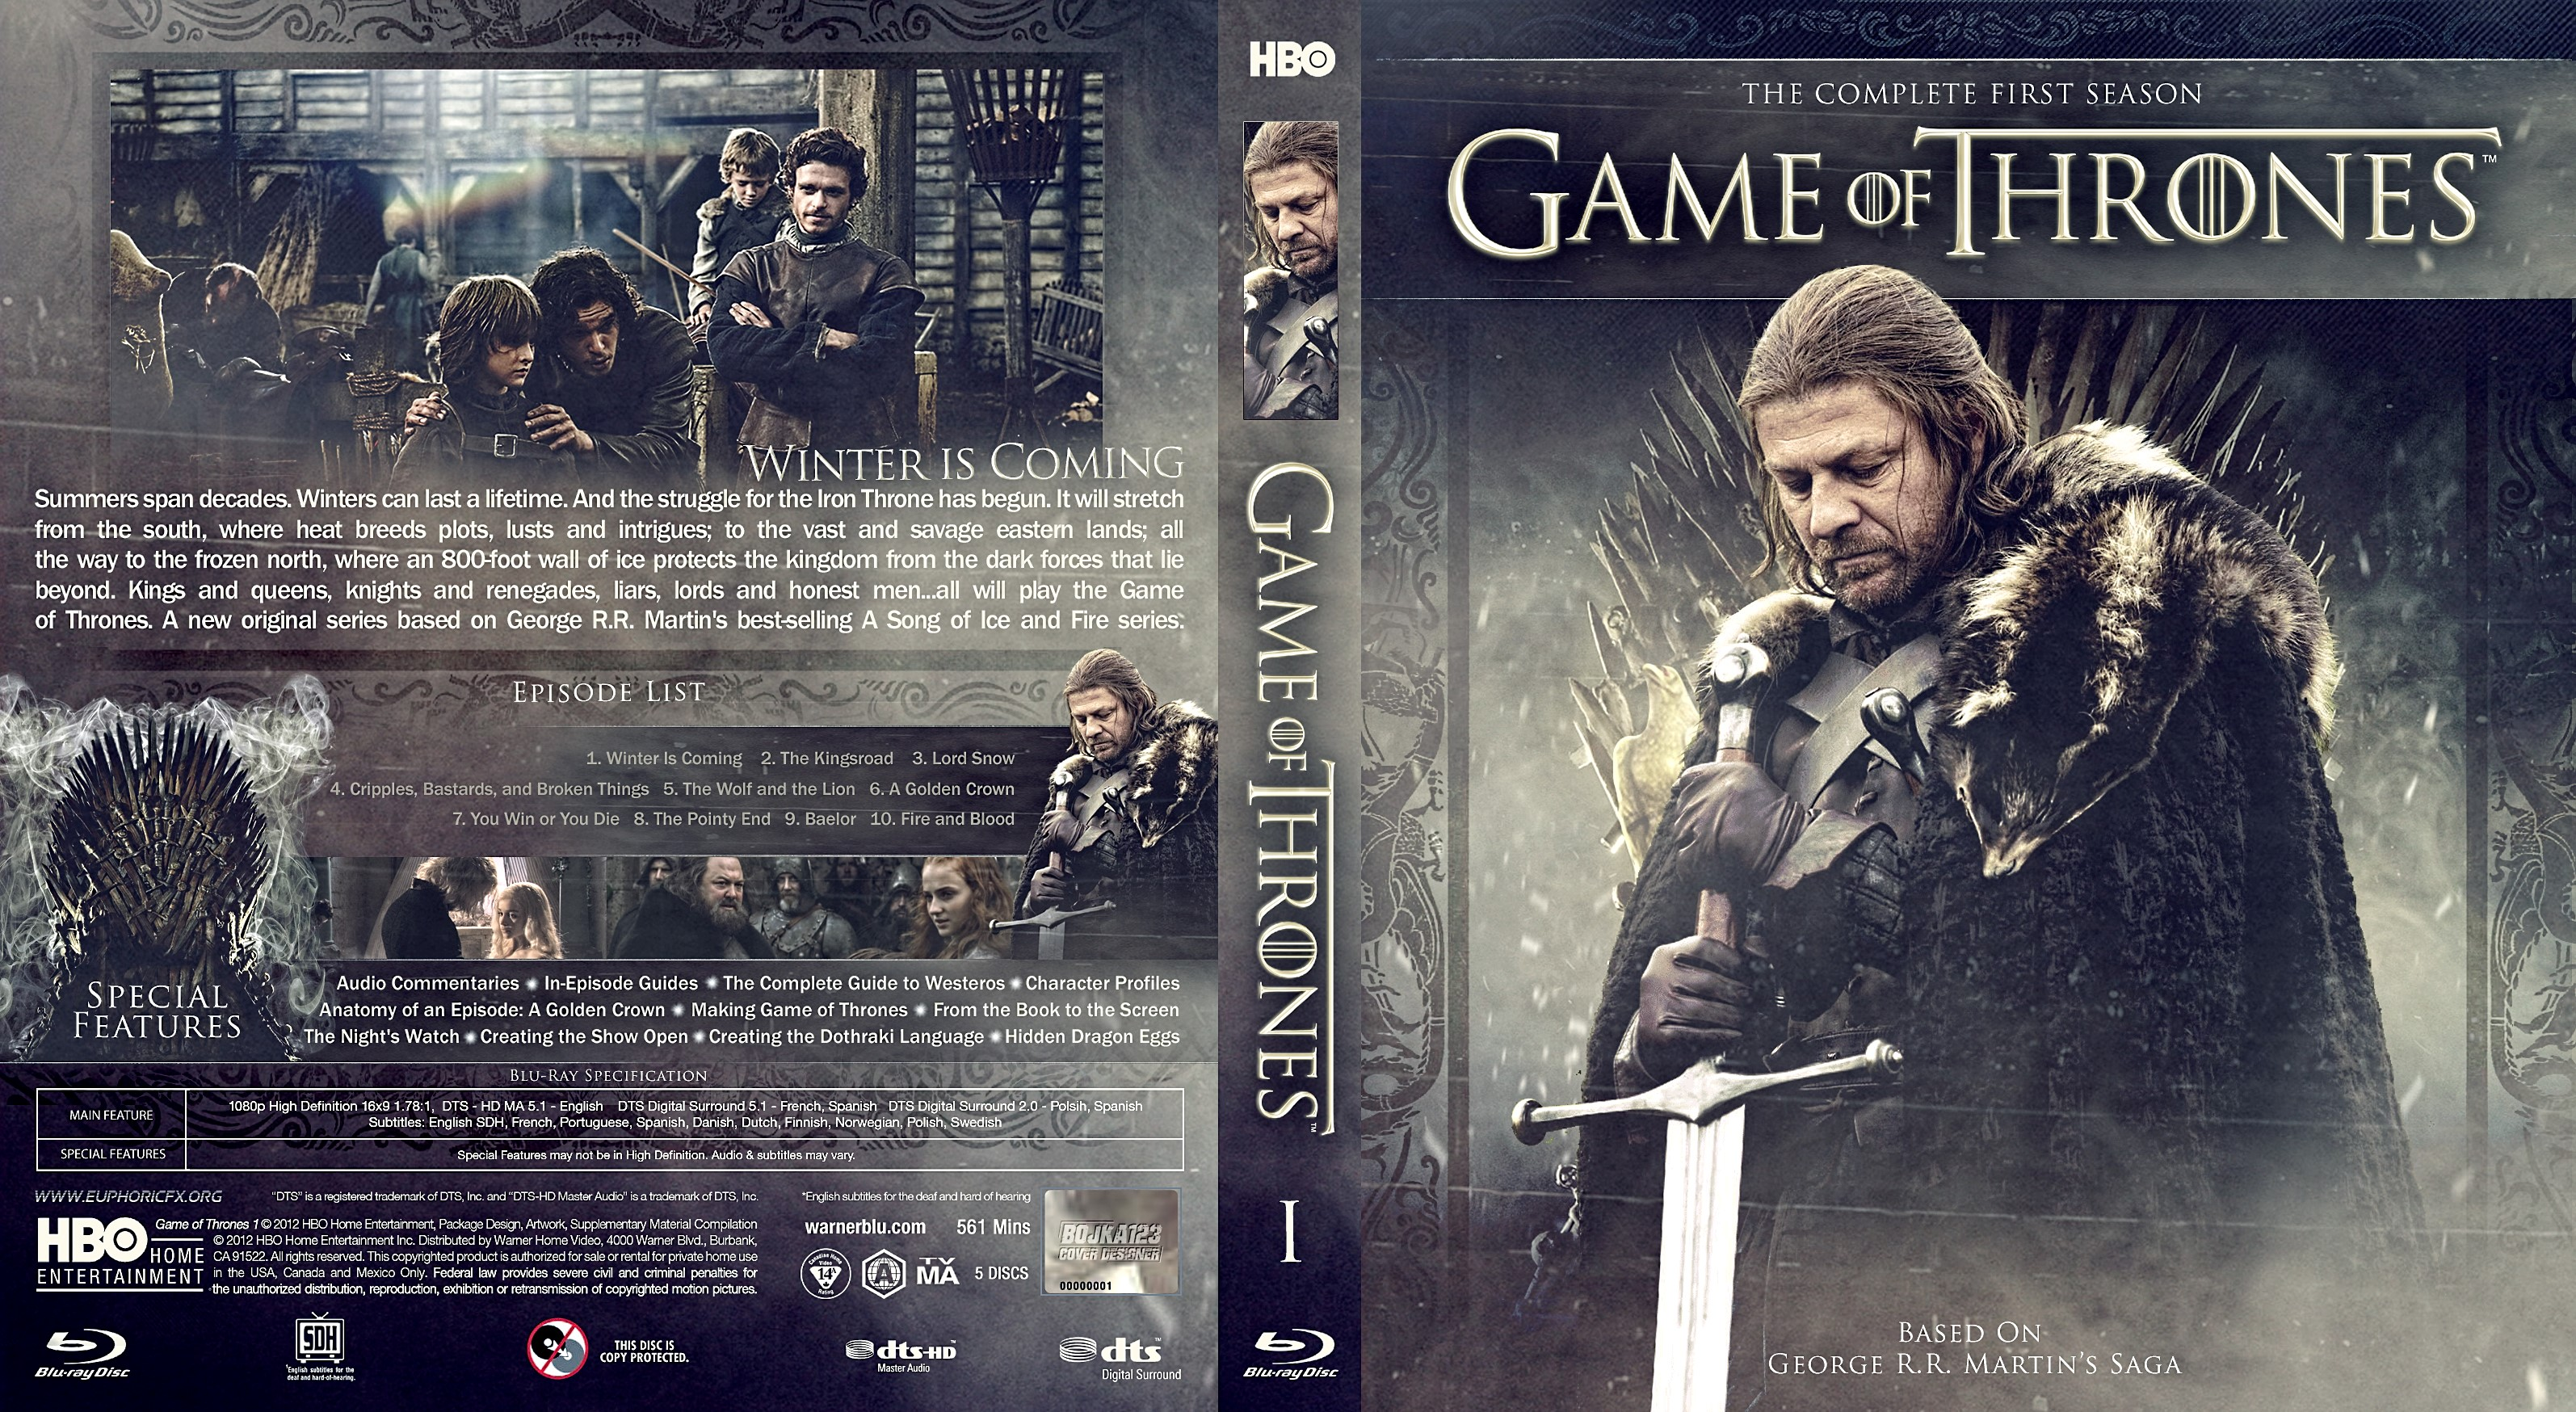 Game of thrones season dvds : New restaurants in portsmouth nh